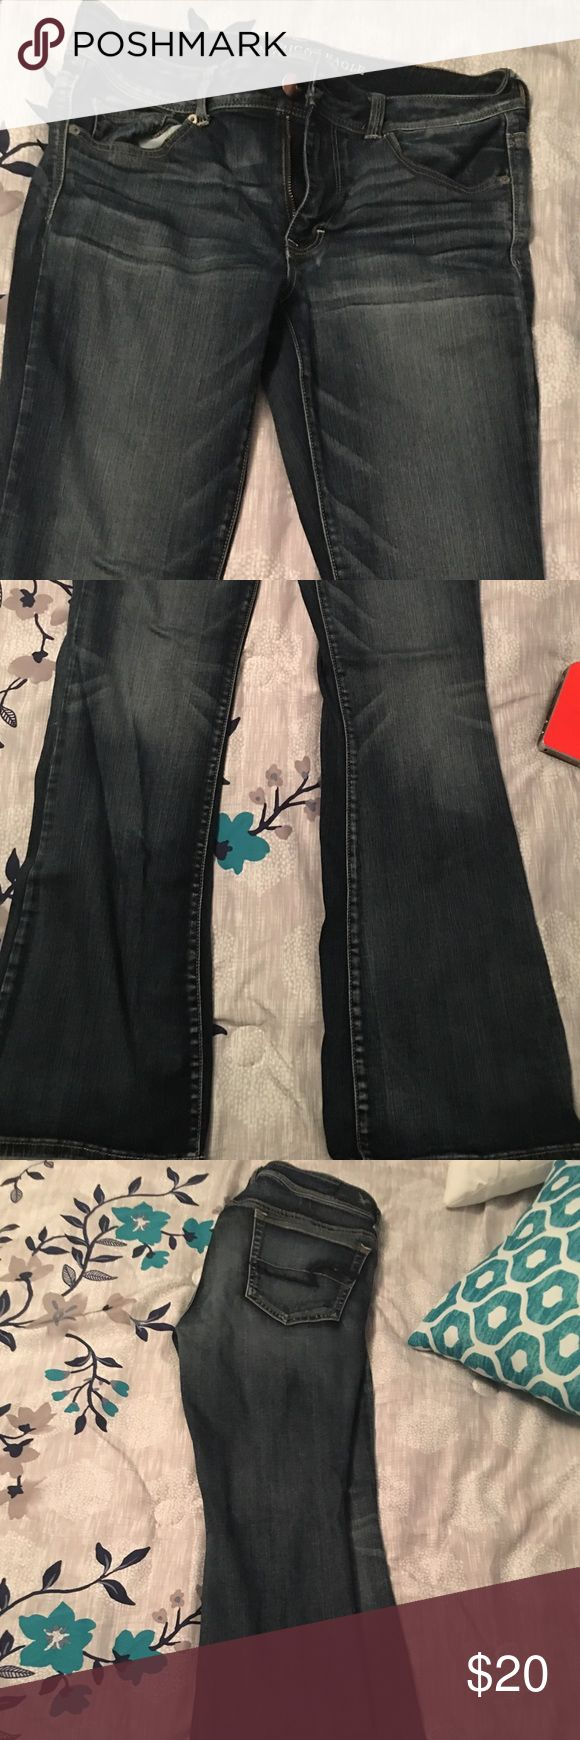 American Eagle super stretch jeans AE outfitters super stretch flare jeans- only worn twice. Perfect condition, super comfortable. American Eagle Outfitters Pants Boot Cut & Flare